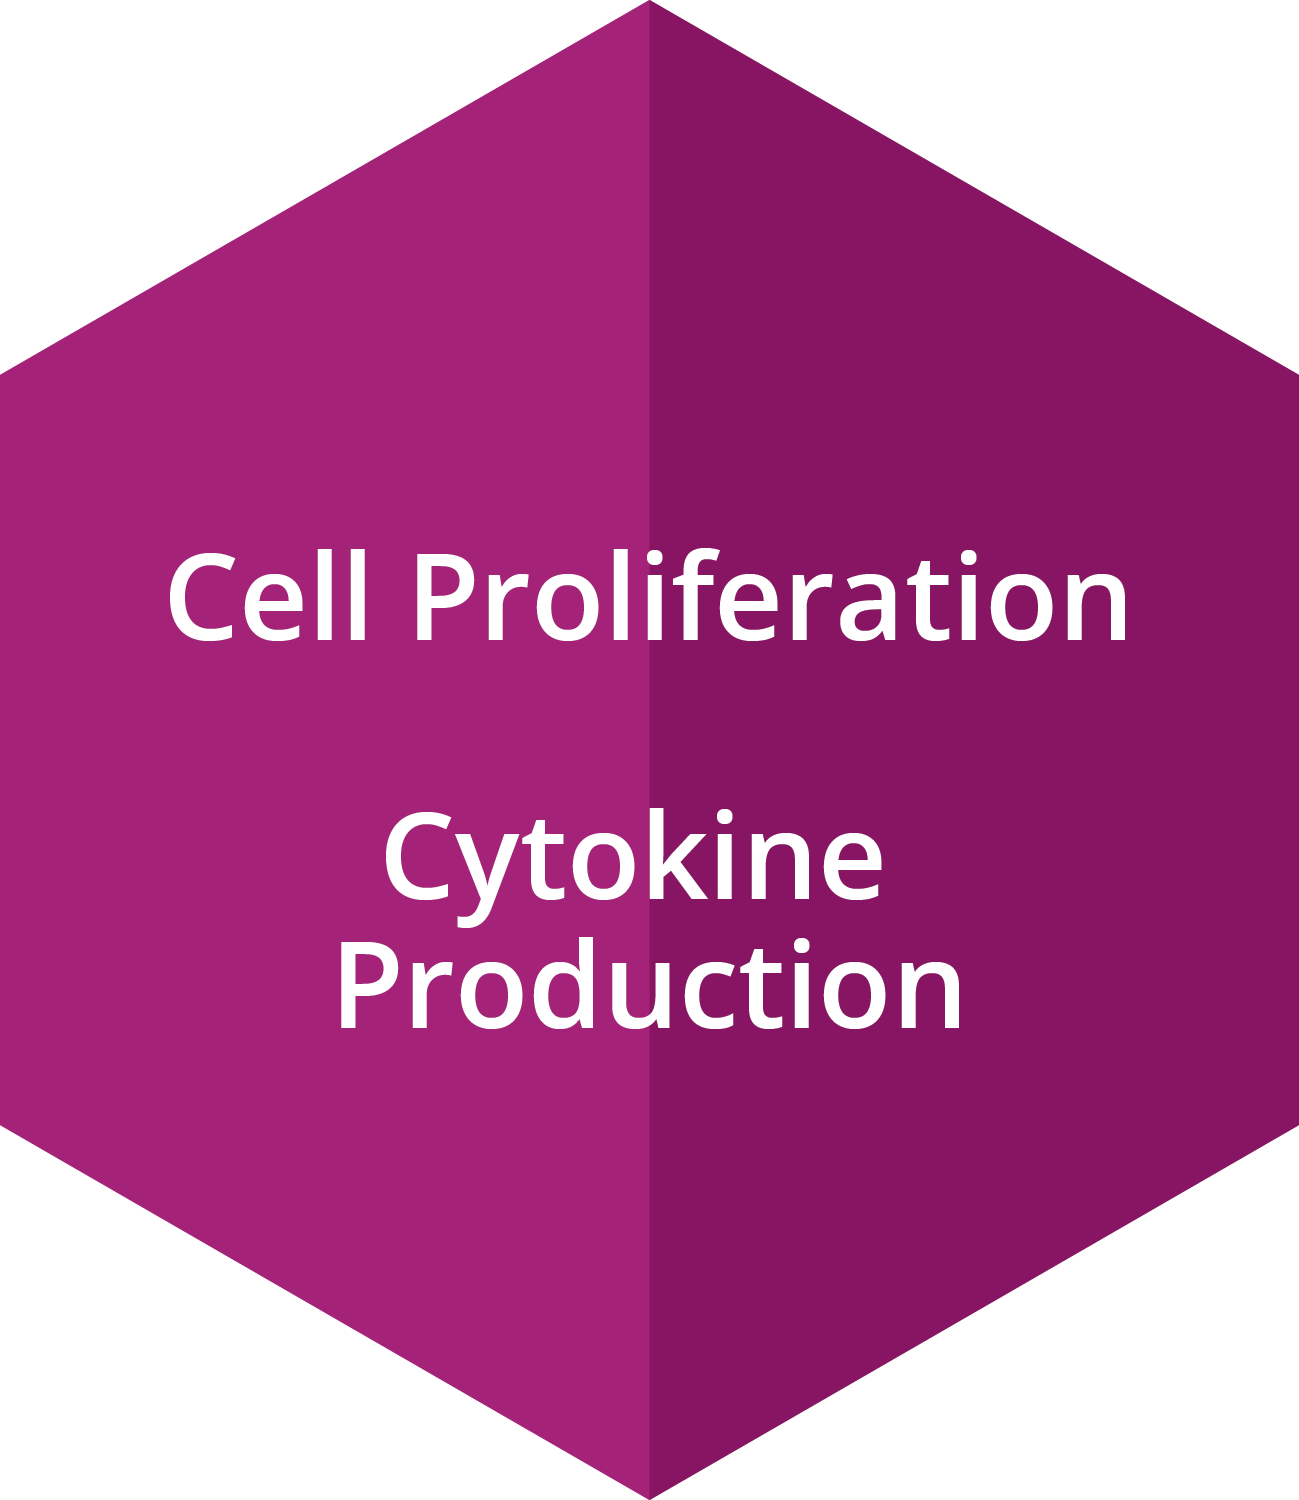 Cell Proliferation, Cytokine Production